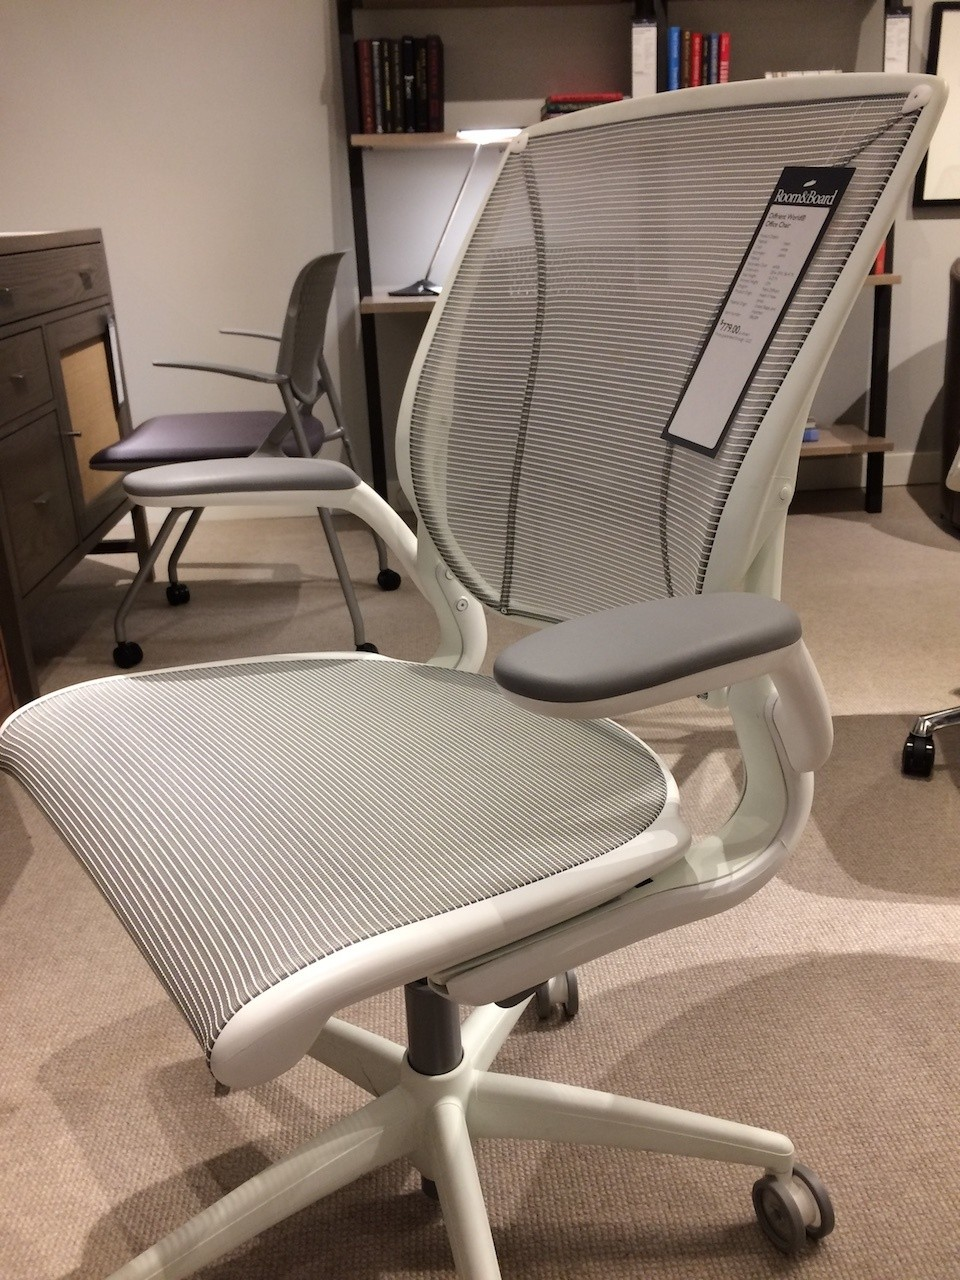 Humanscale Diffrient World Chair side angle view